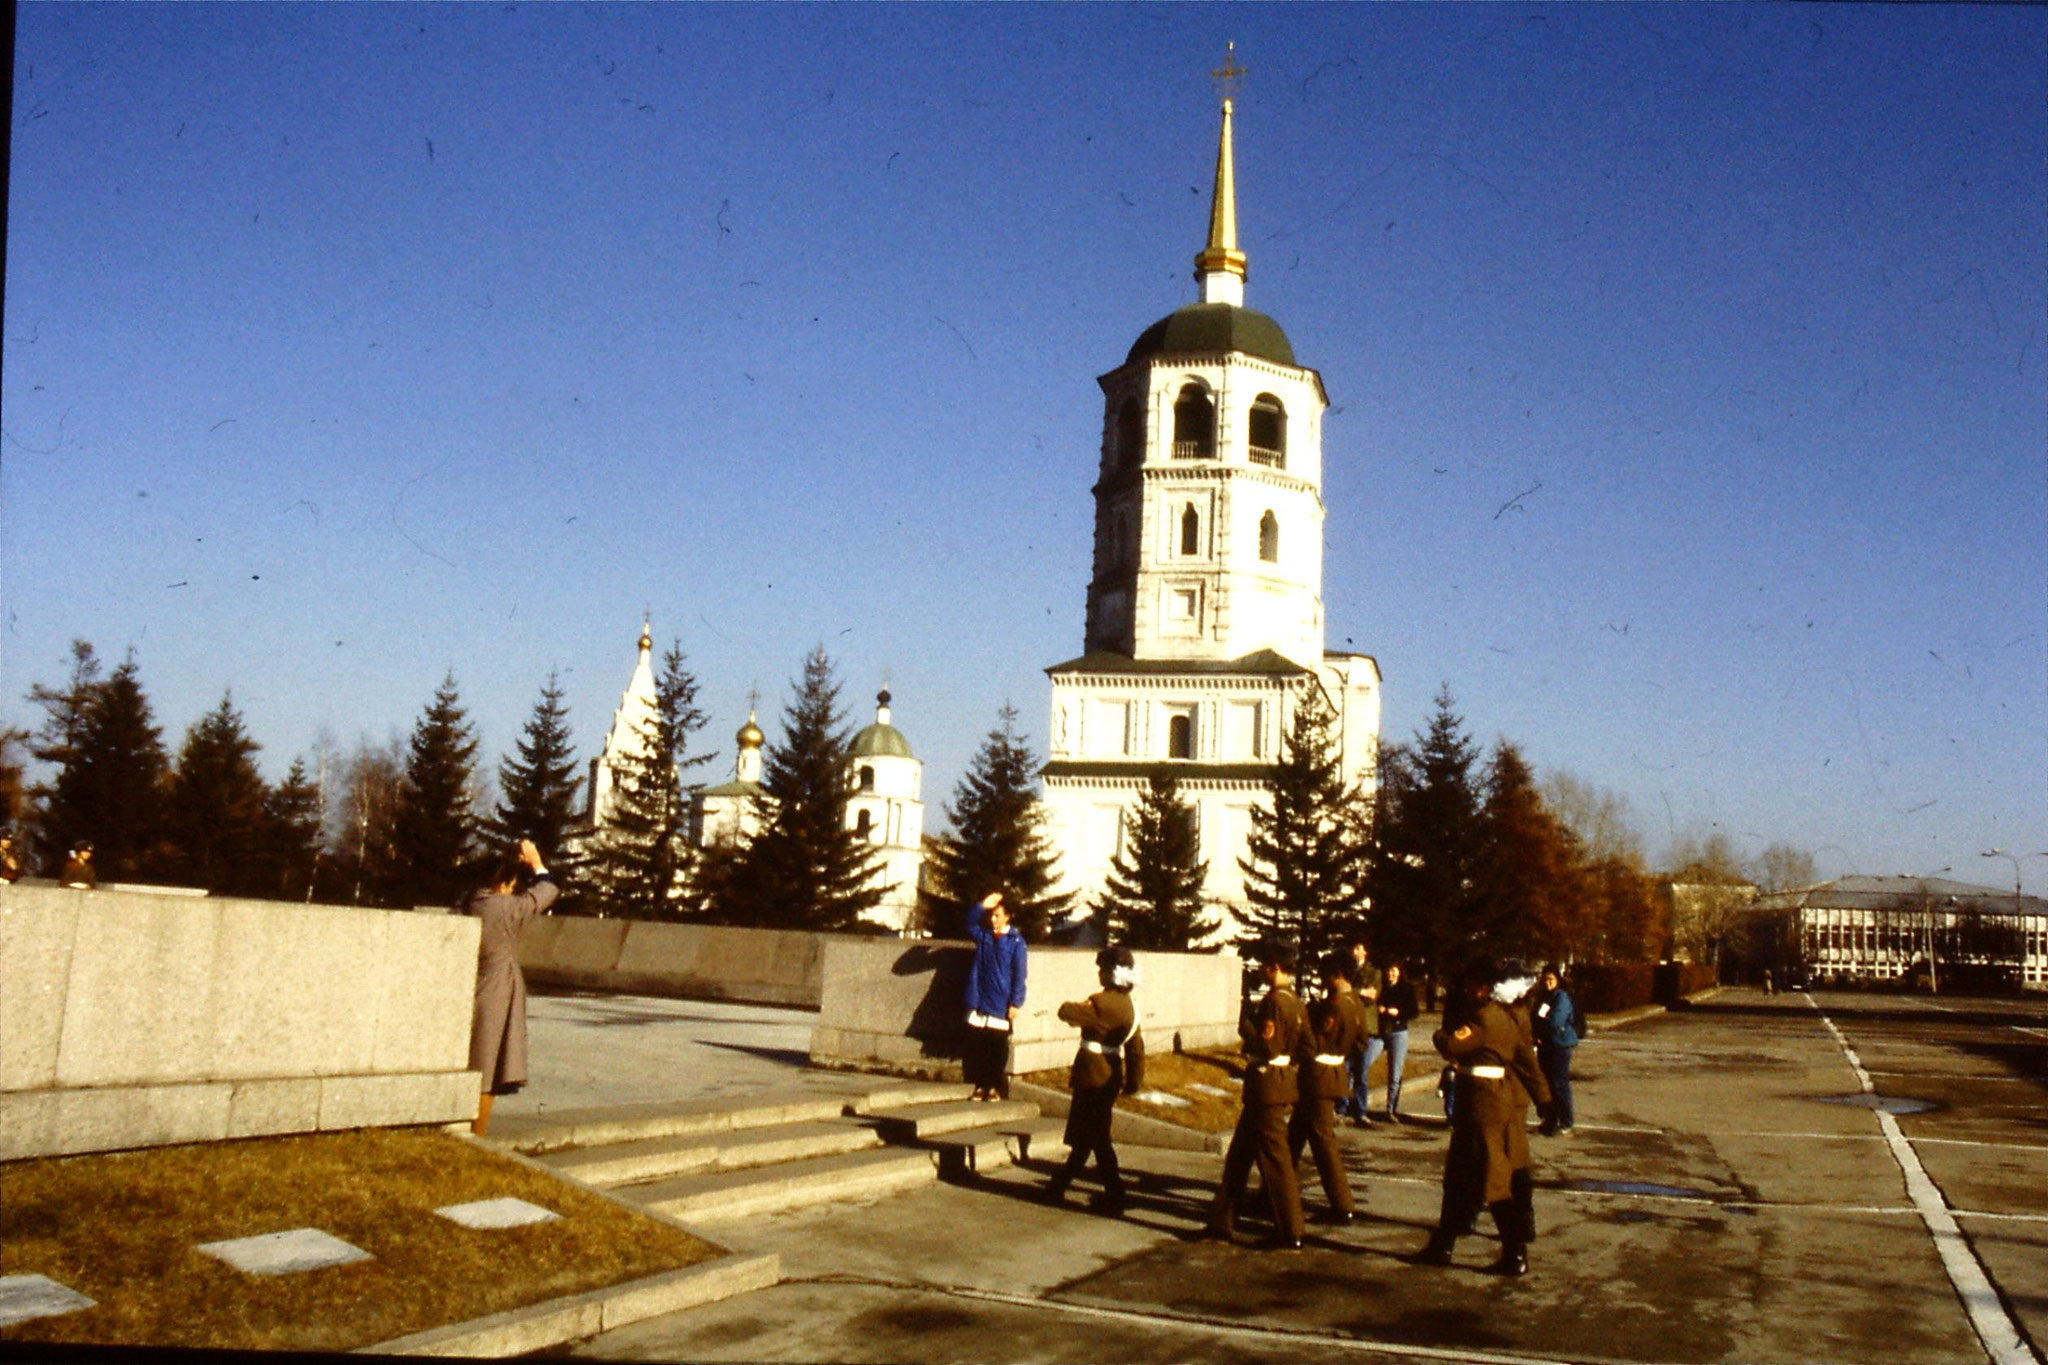 24/10/1988: 7: Irkutsk war memorial